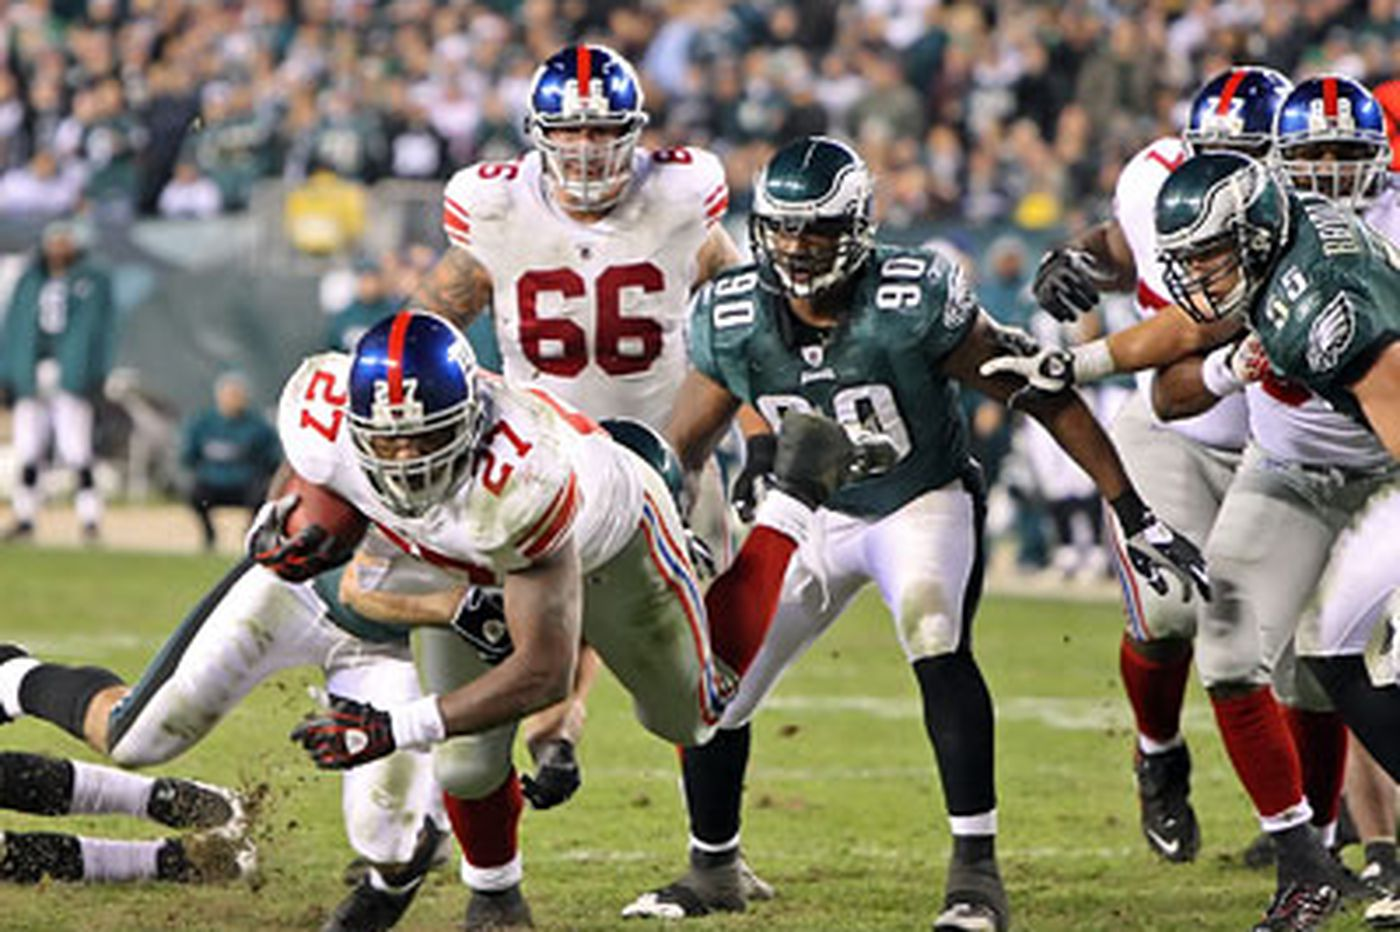 Rich Hofmann: Challenging night for Eagles as Giants rally around red flag